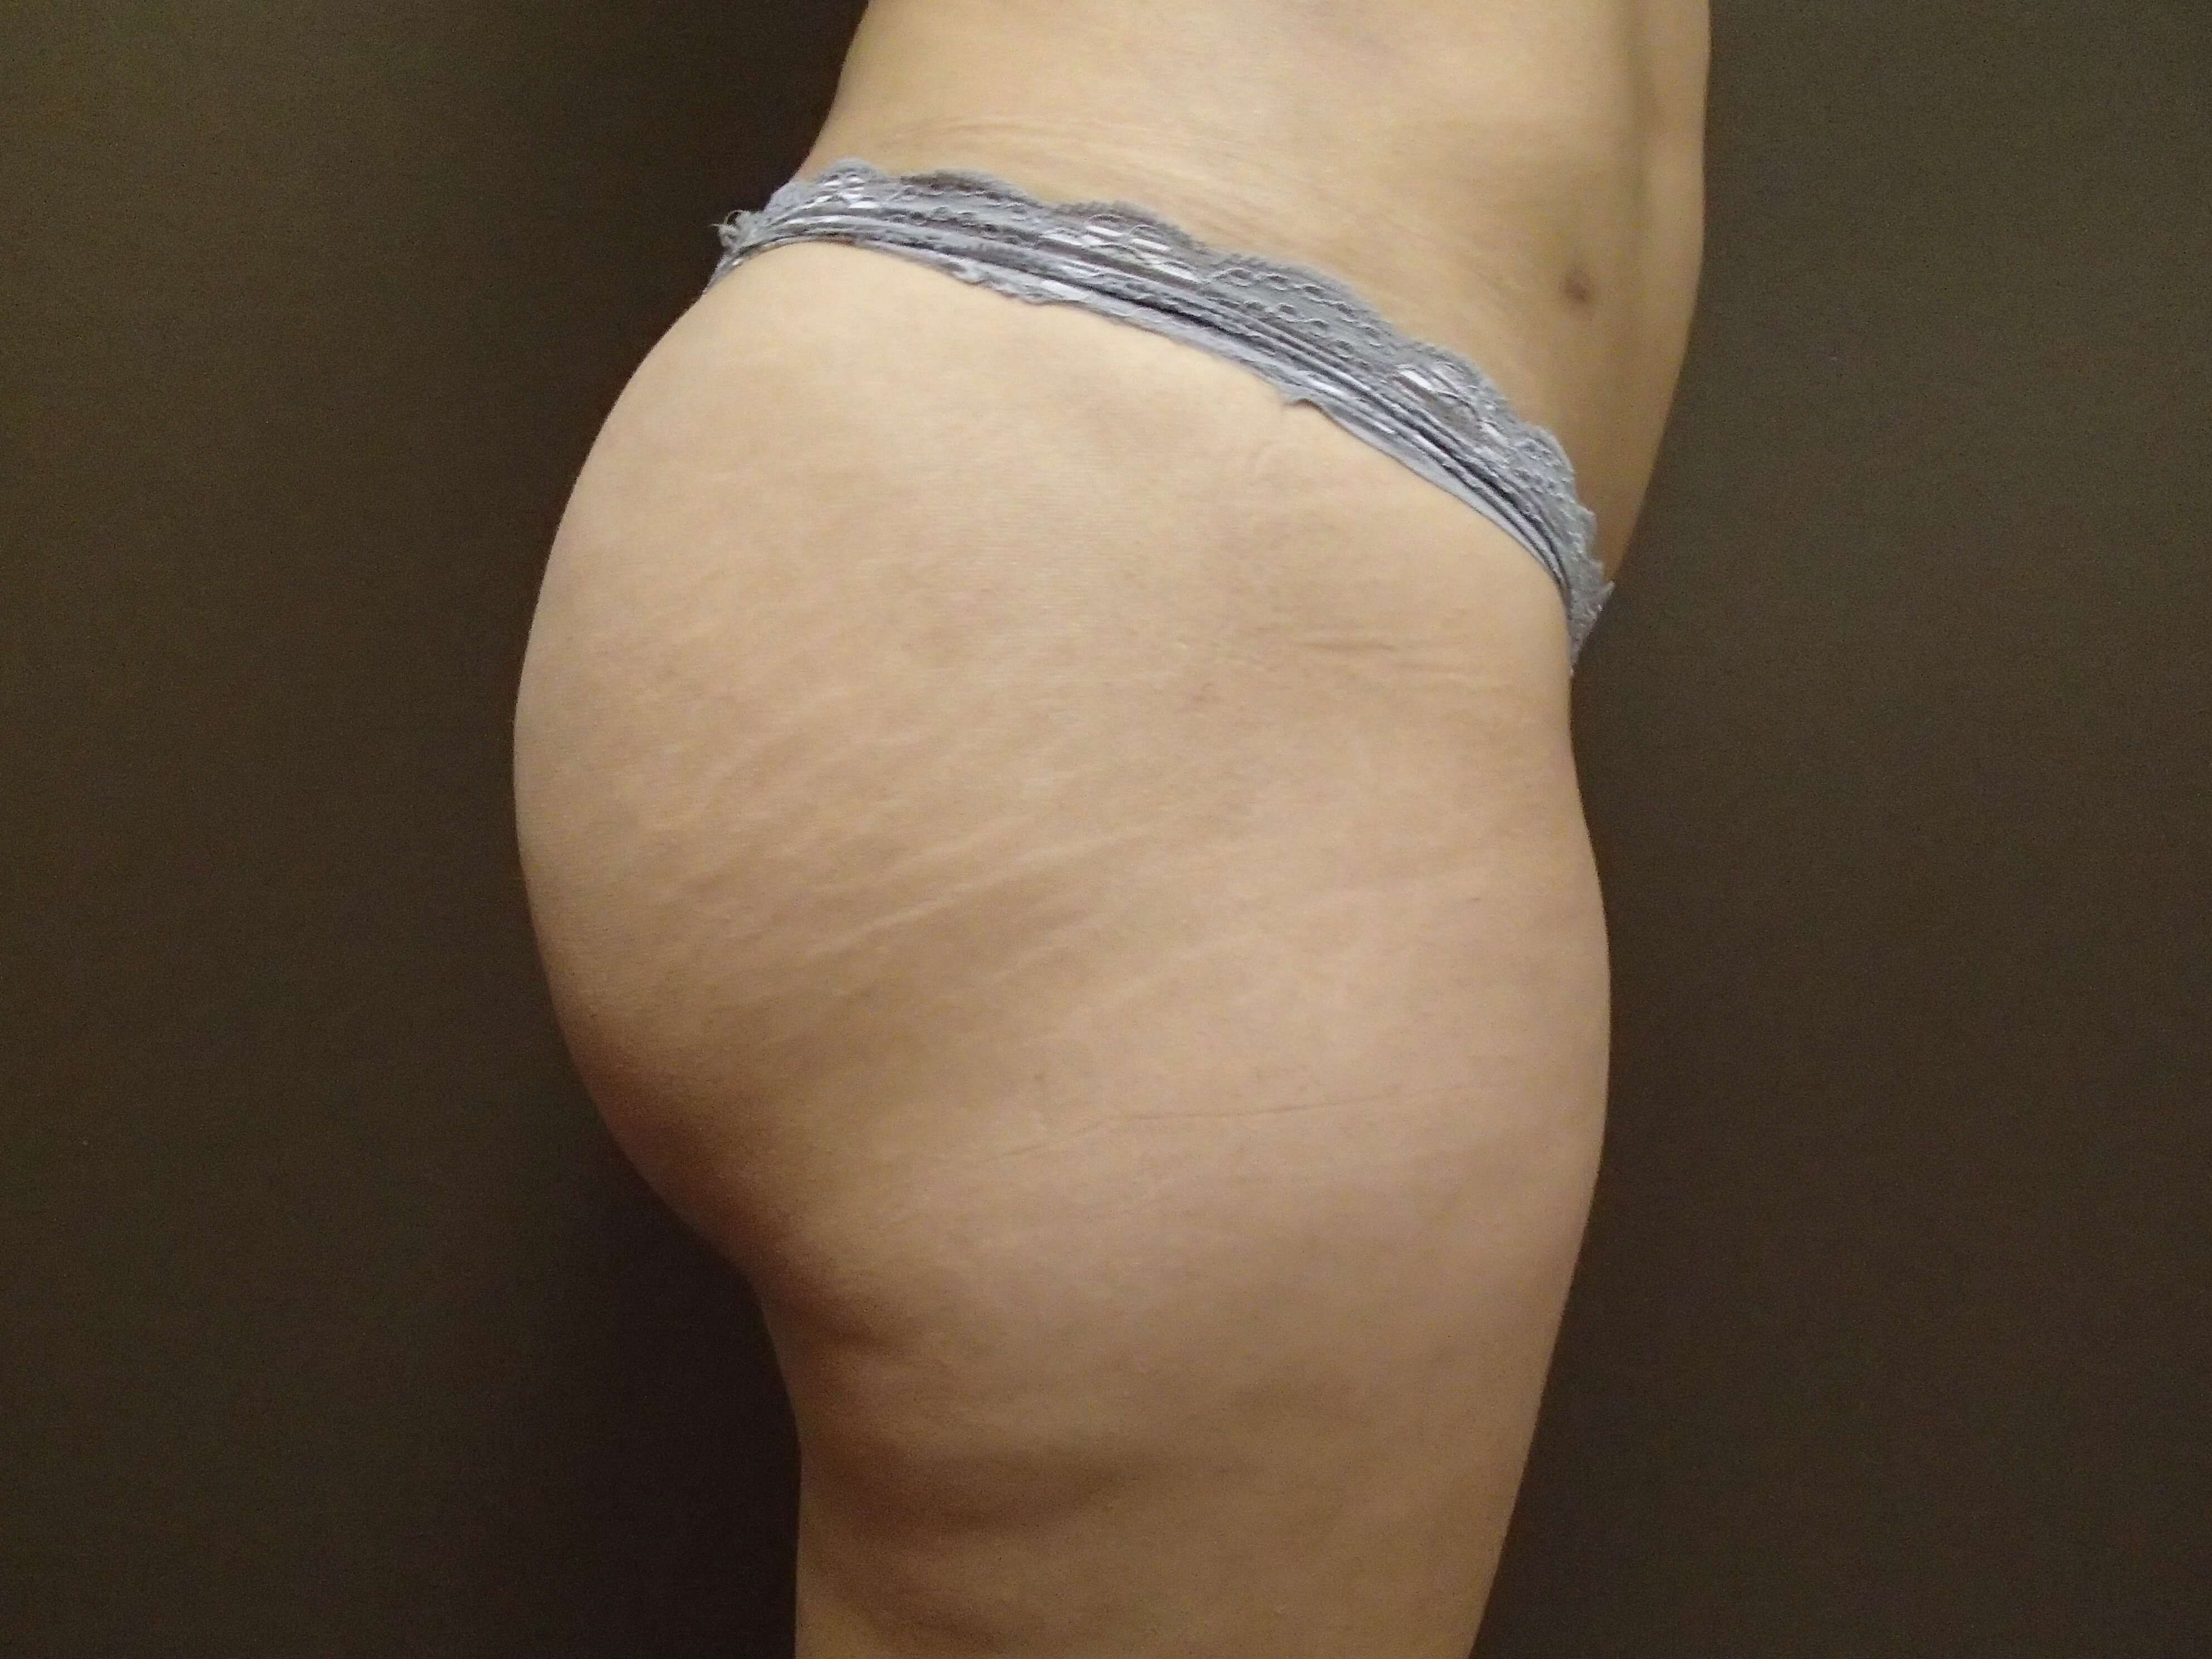 Brazilian Butt Lift (BBL) After